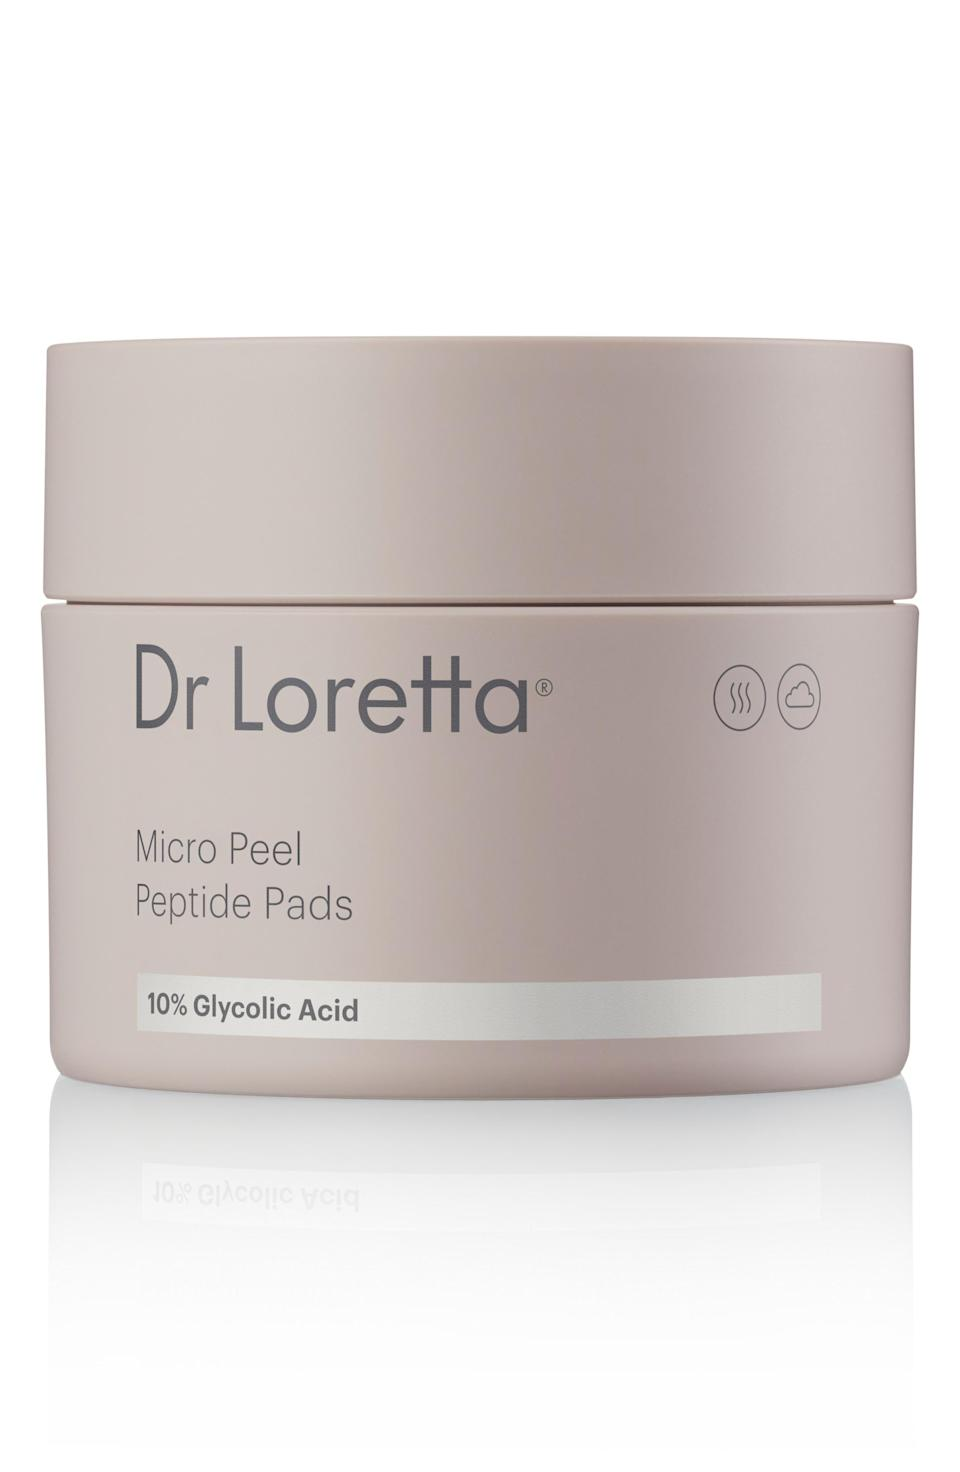 """<p><strong>Dr. Loretta</strong></p><p>nordstrom.com</p><p><strong>$60.00</strong></p><p><a href=""""https://go.redirectingat.com?id=74968X1596630&url=https%3A%2F%2Fwww.nordstrom.com%2Fs%2Fdr-loretta-micro-peel-peptide-pads%2F5096719&sref=https%3A%2F%2Fwww.oprahdaily.com%2Fbeauty%2Fg36792186%2Fbest-products-for-acne-scars%2F"""" rel=""""nofollow noopener"""" target=""""_blank"""" data-ylk=""""slk:Shop Now"""" class=""""link rapid-noclick-resp"""">Shop Now</a></p><p>These peel pads pair 10% resurfacing glycolic acid with algae peptides, which work to minimize any discomfort or irritation from the AHA.</p>"""